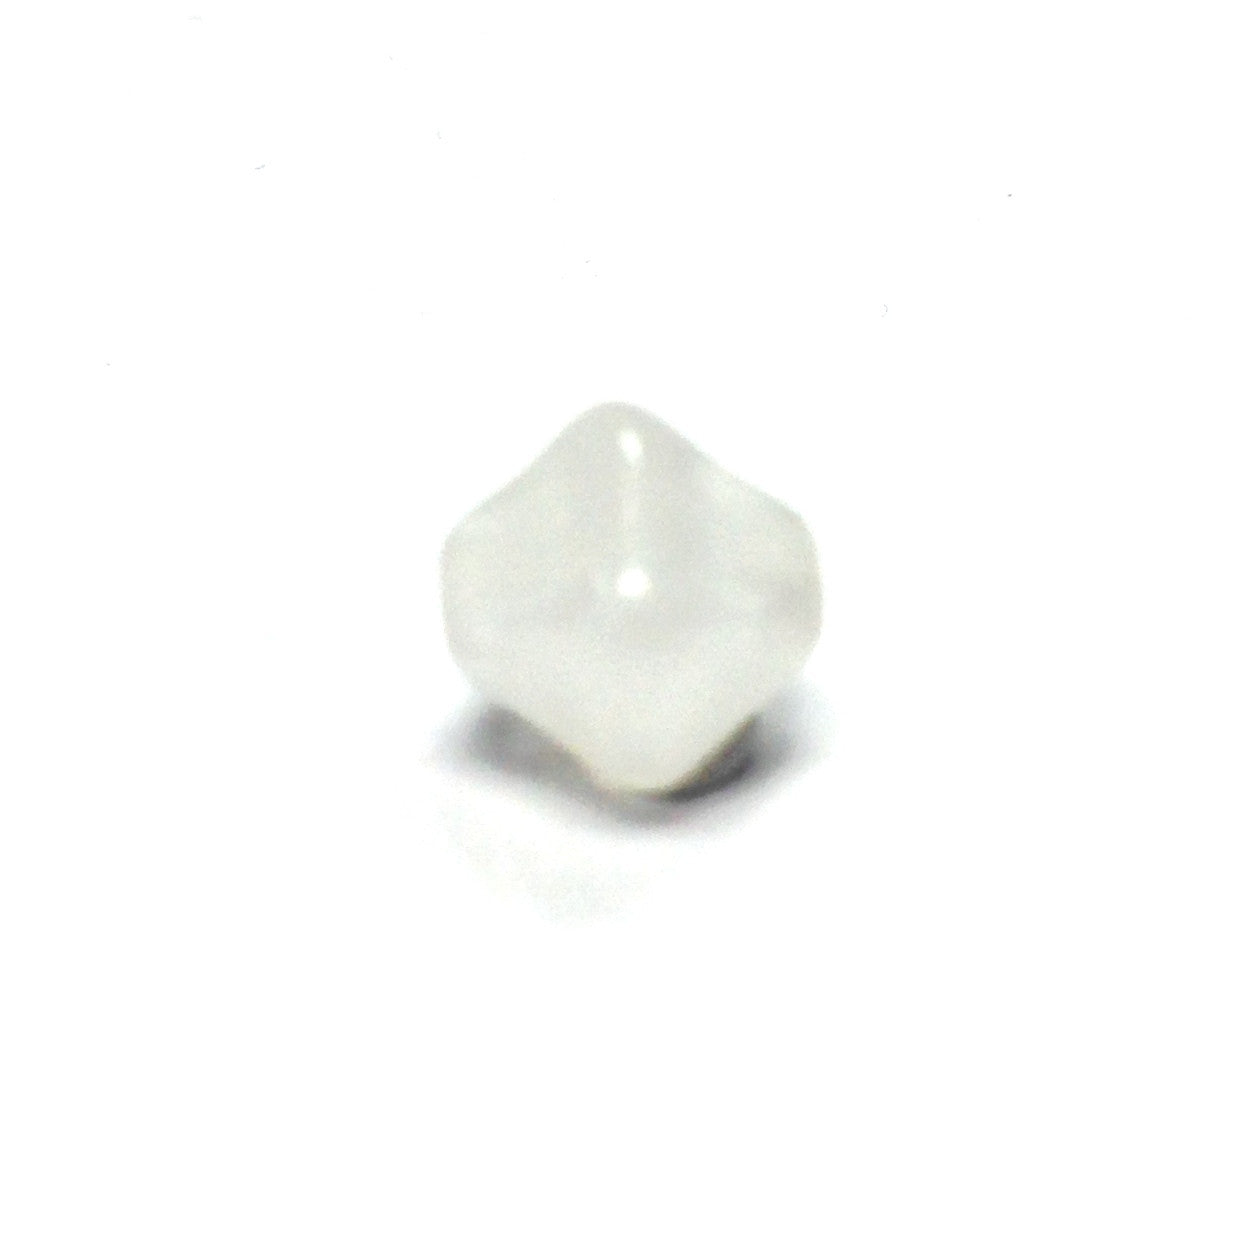 8MM White Glass Pyramid Bead (72 pieces)